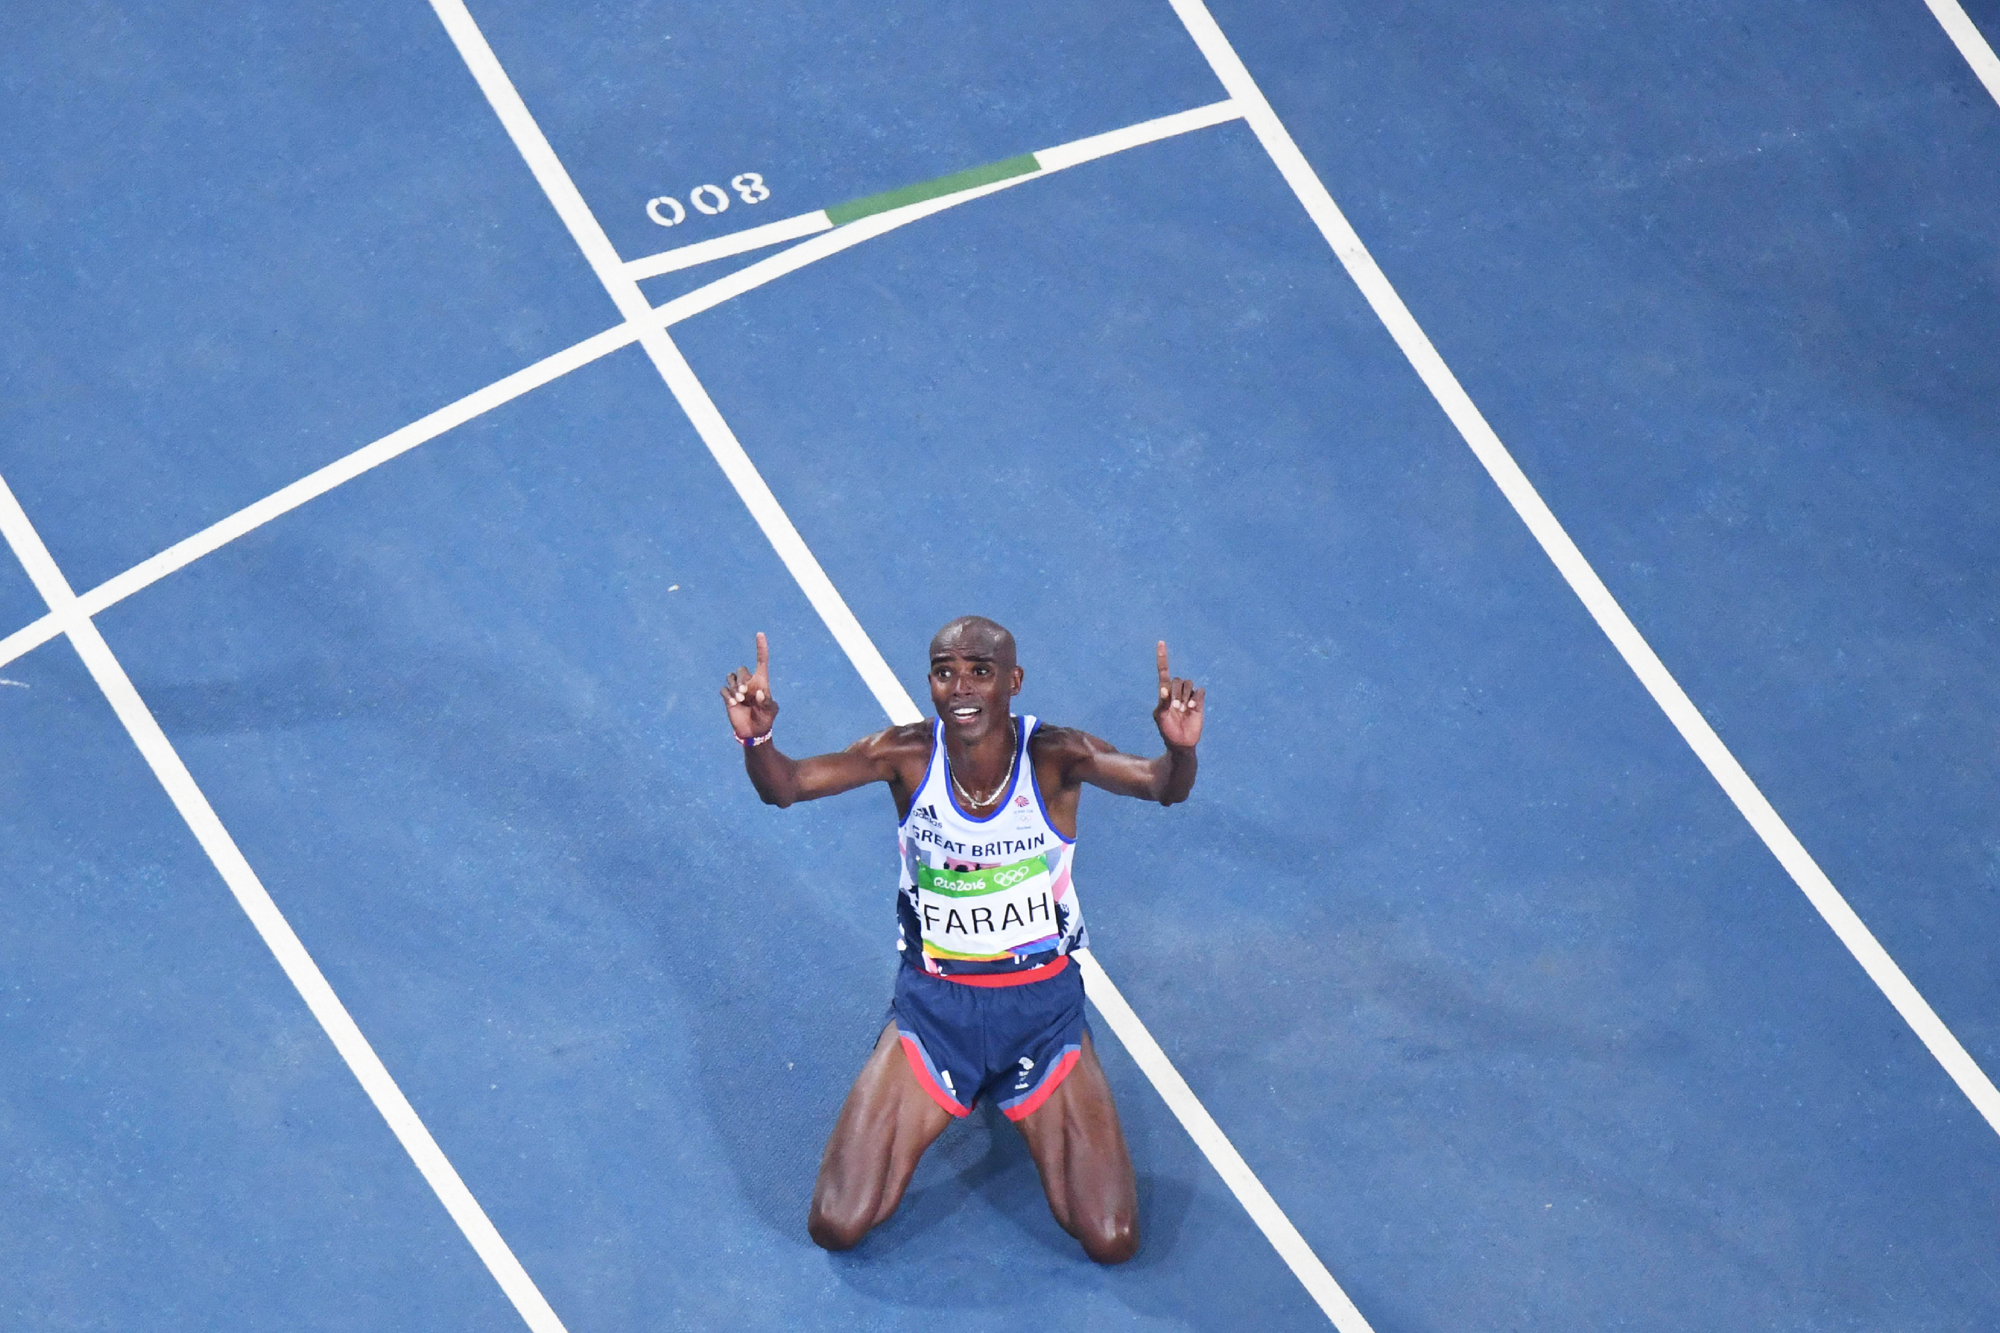 Britain's Mo Farah celebrates winning the Men's 10,000m during the athletics event at the Rio 2016 Olympic Games at the Olympic Stadium in Rio de Janeiro on August 13, 2016.